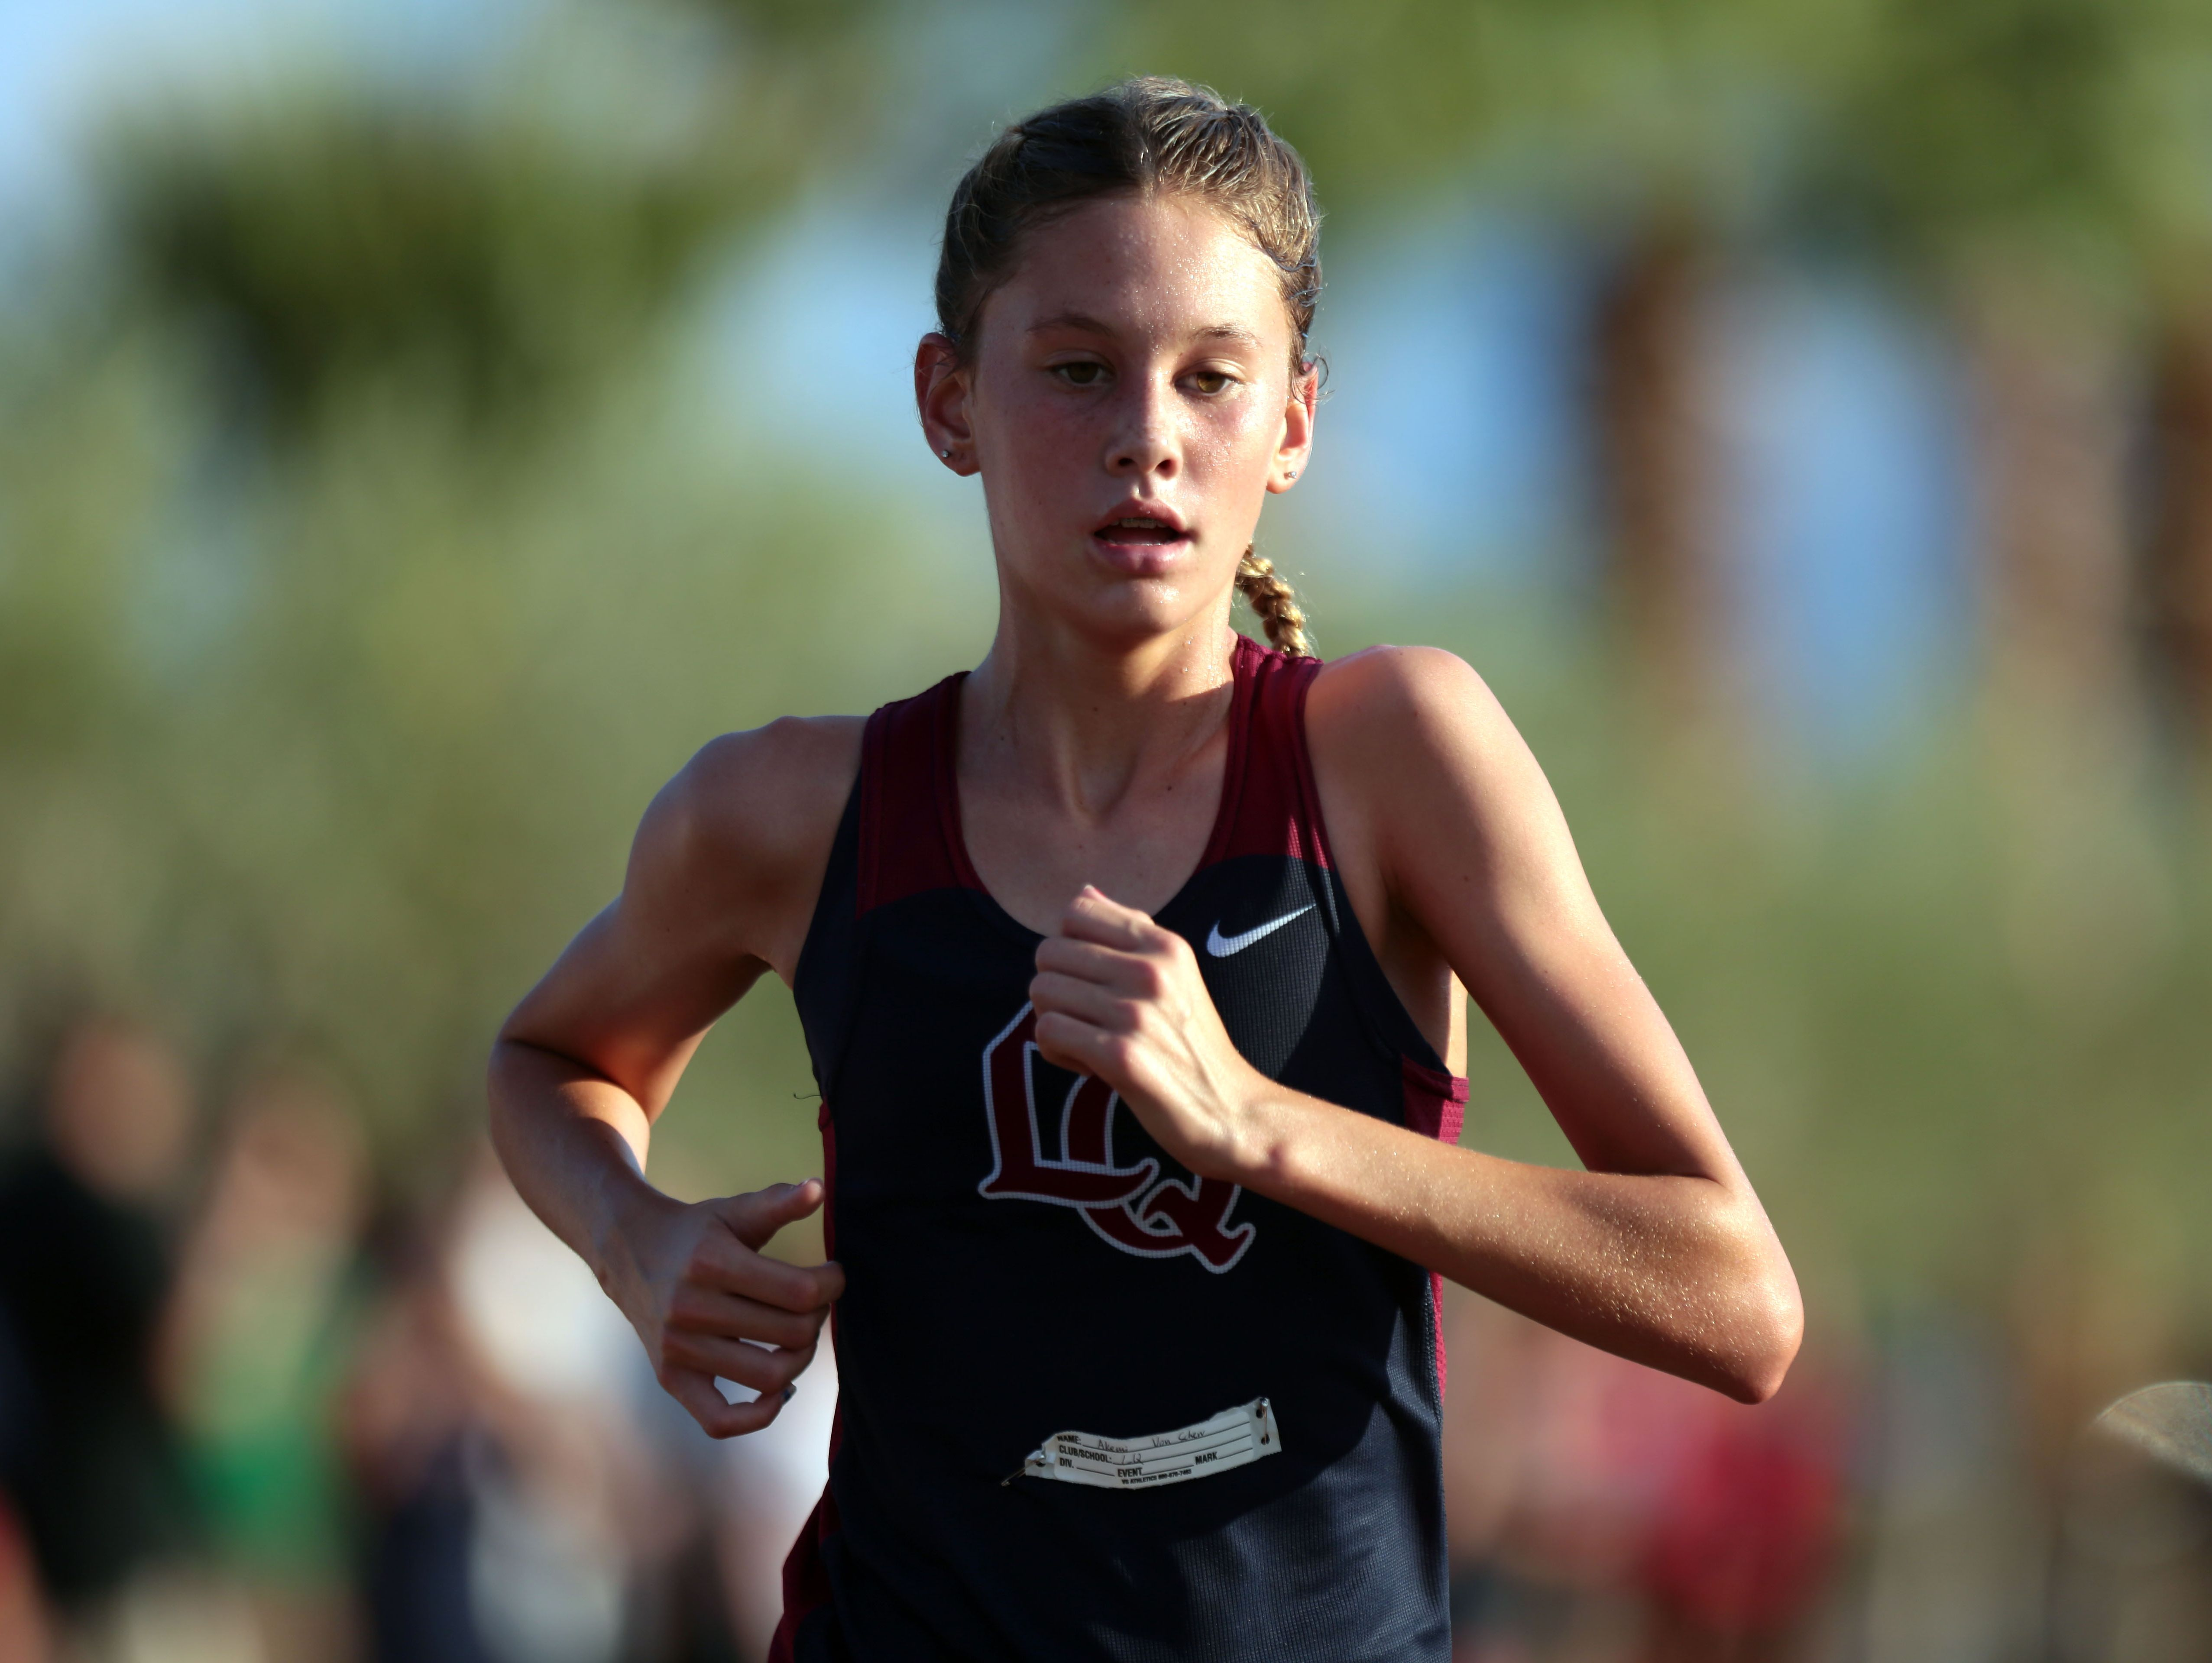 La Quinta's Akemi Von Schew is first in the girls' varsity race during the cross country meet at Xavier College Prep in Palm Desert on Wednesday, September 21, 2016.